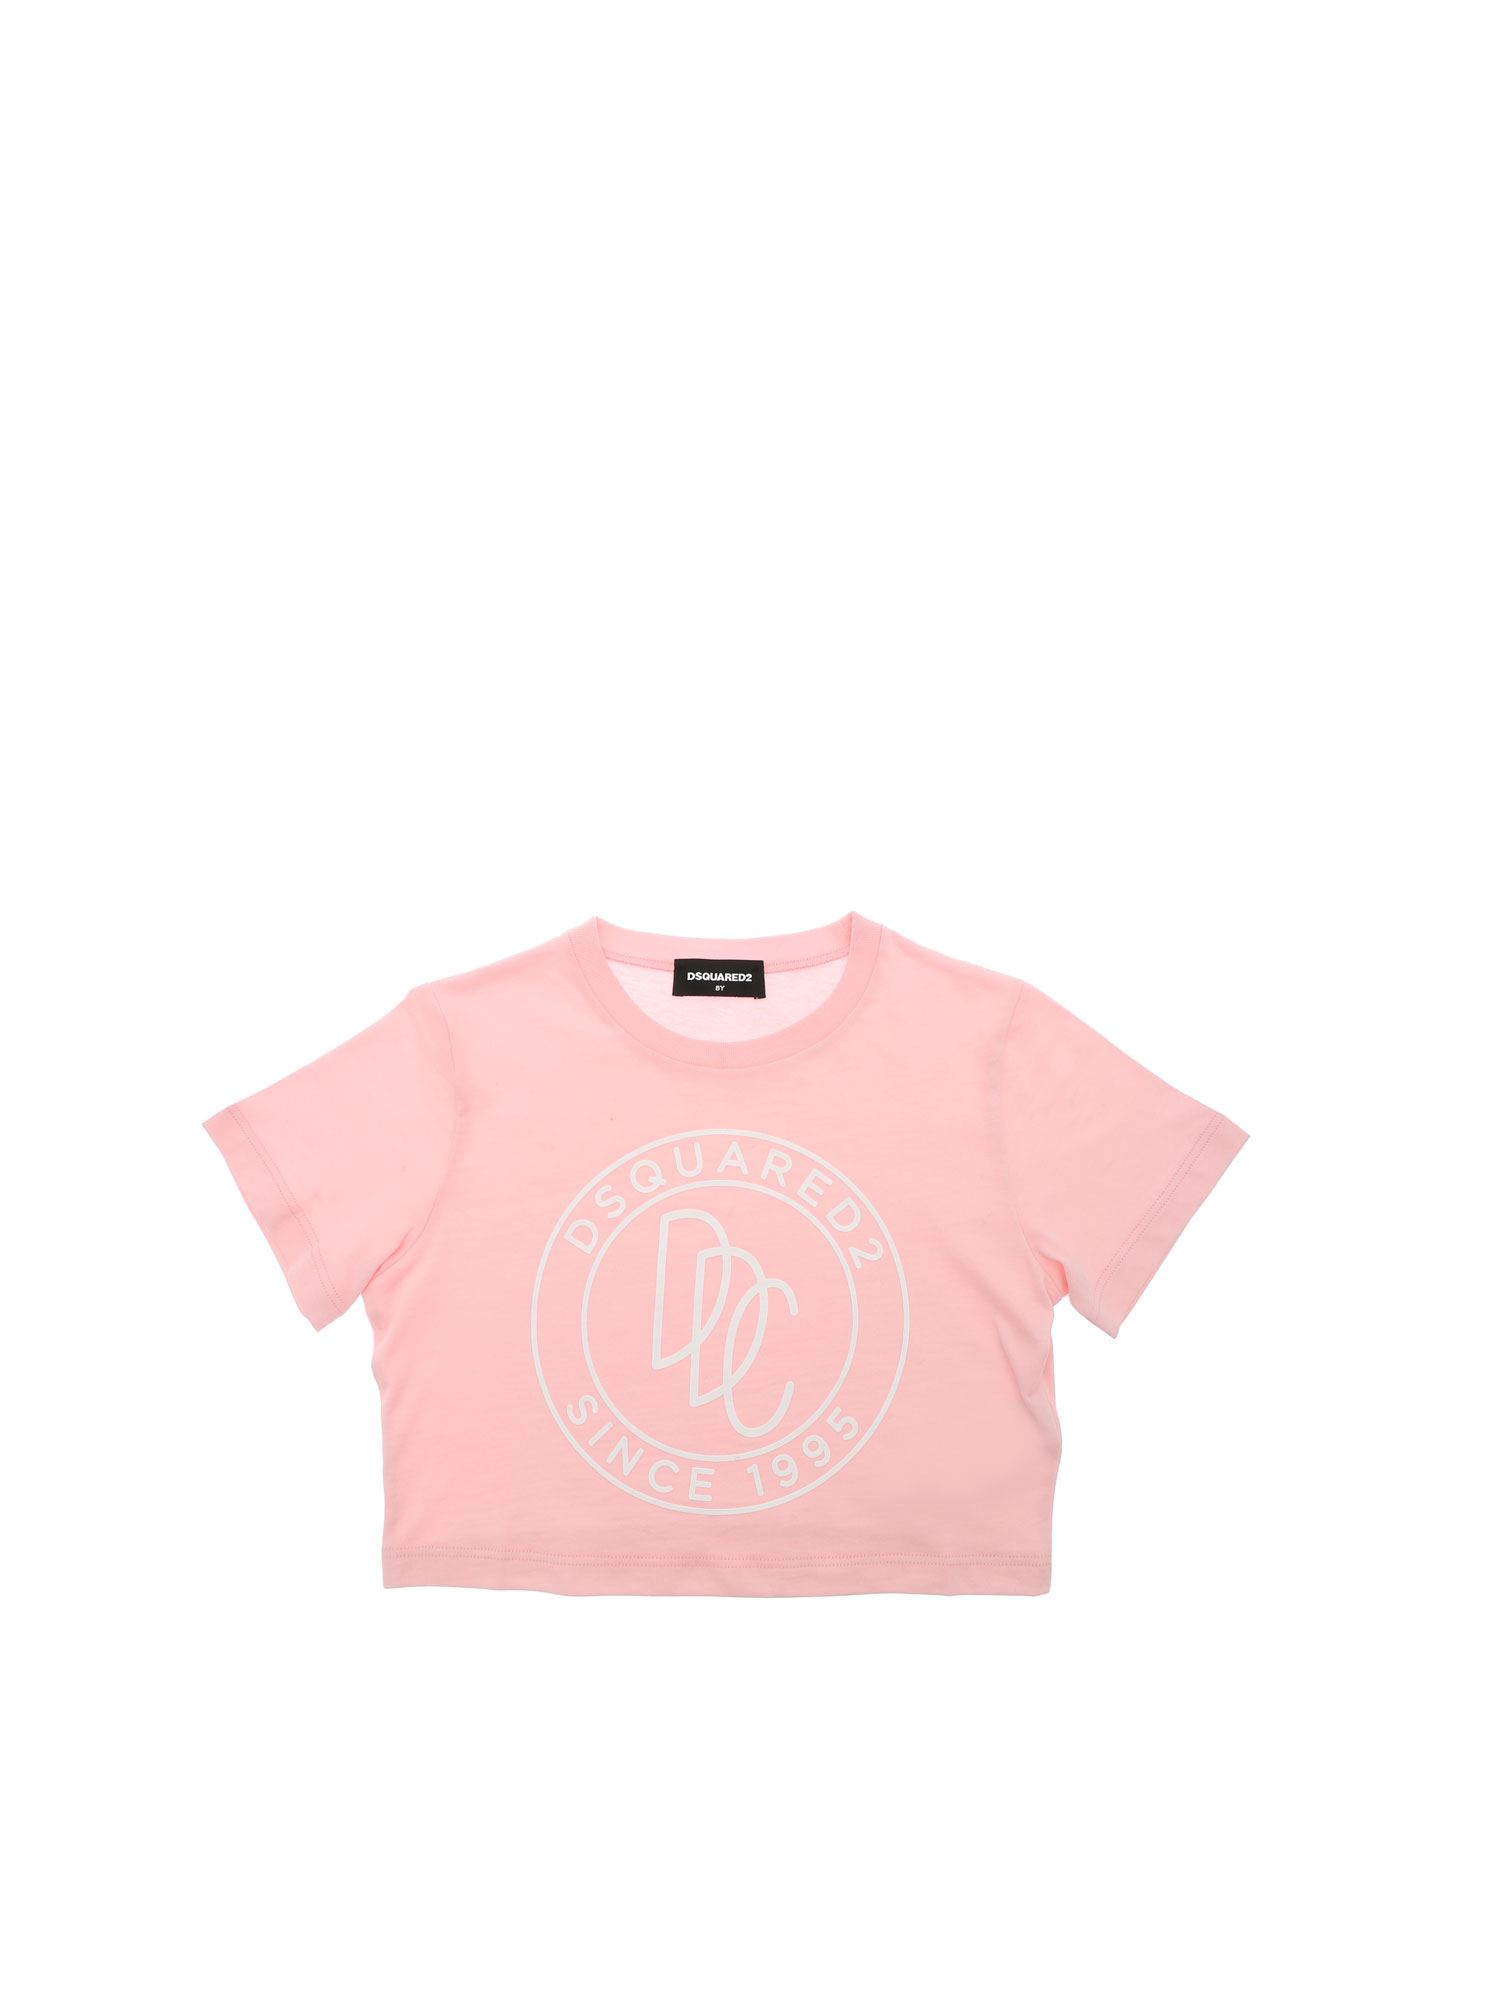 Dsquared2 CONTRASTING PRINT T-SHIRT IN PINK